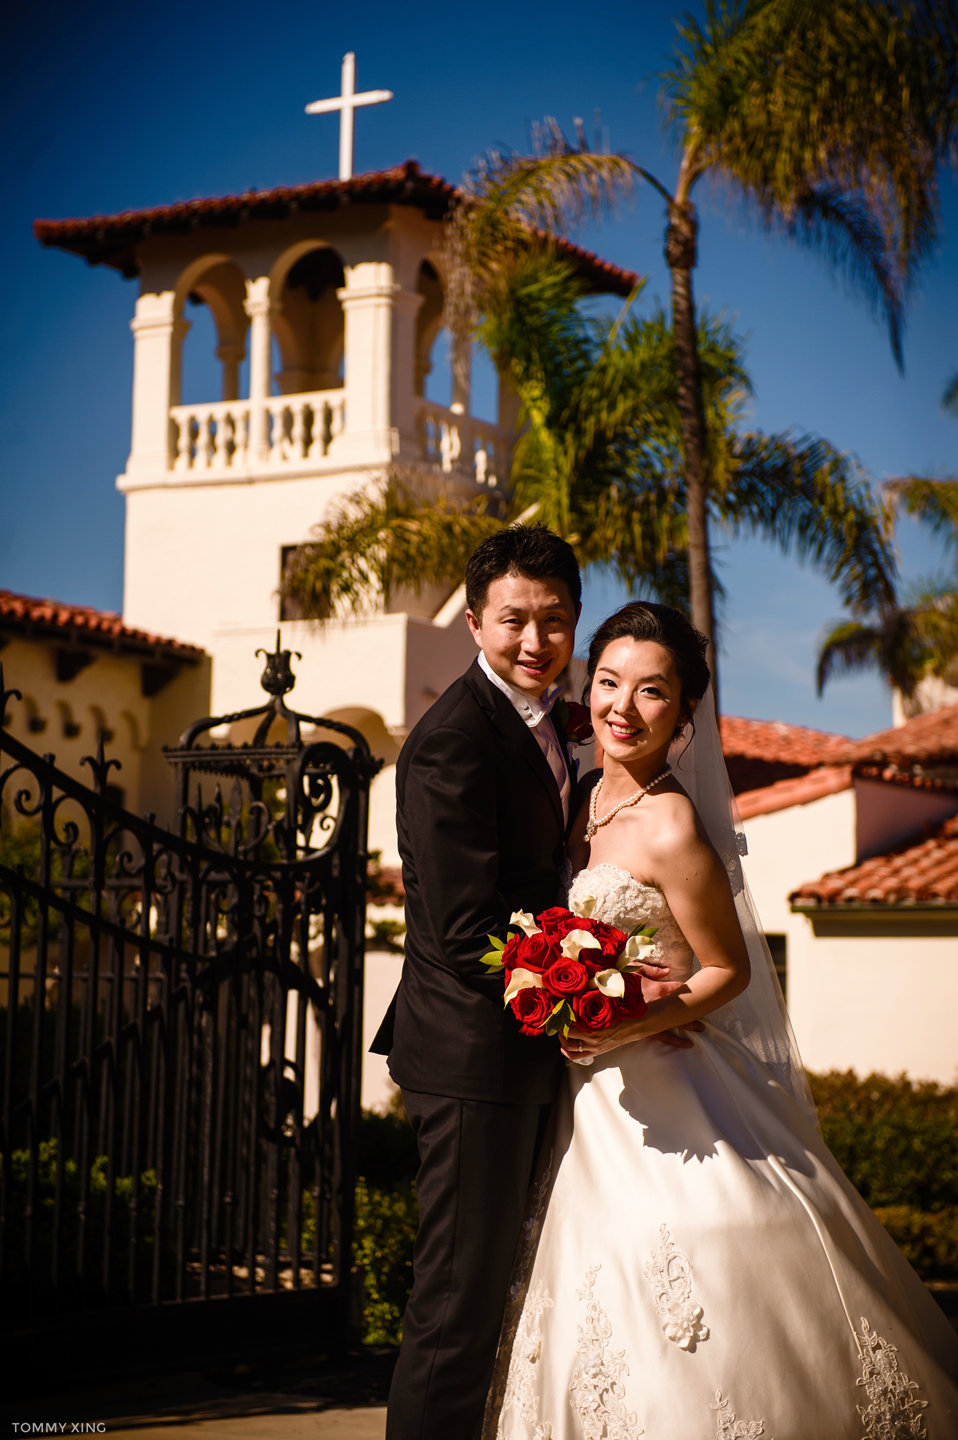 Los Angeles Wedding Photography Neighborhood Church Ranho Palos Verdes  Tommy Xing Photography 洛杉矶旧金山婚礼婚纱照摄影师144.jpg